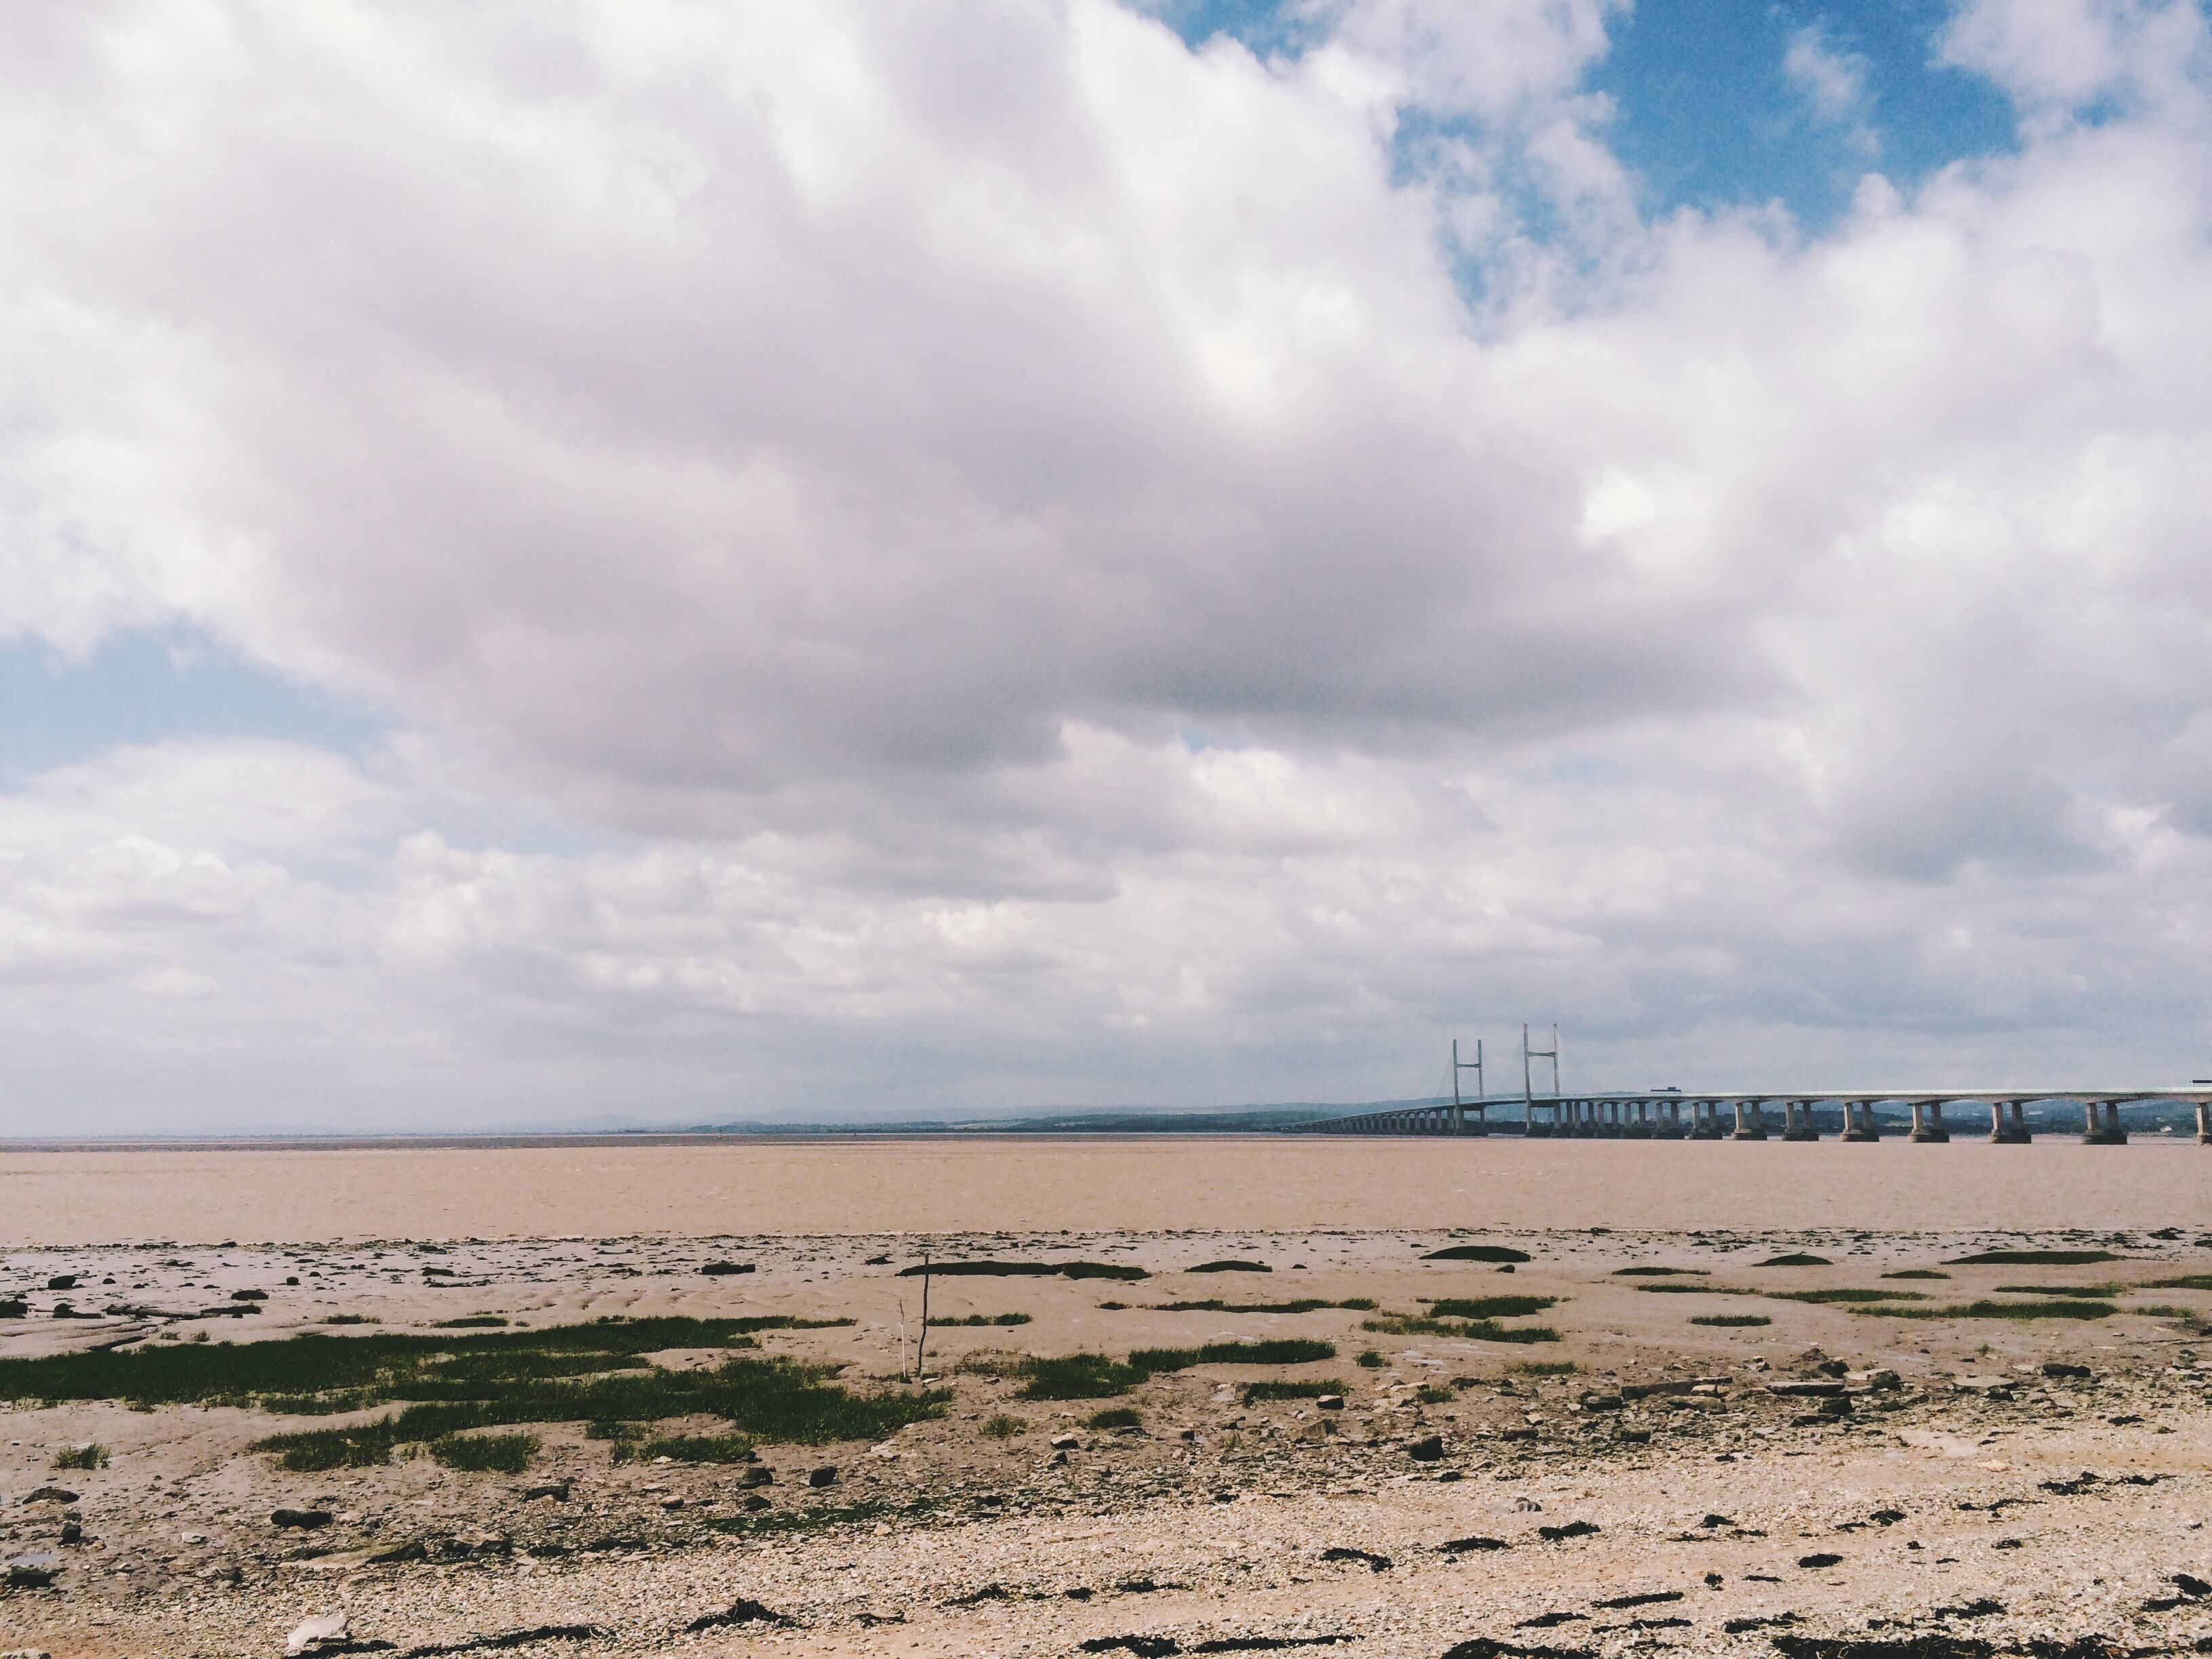 The Severn estuary from Severn Beach. Photo by Marianna Dudley